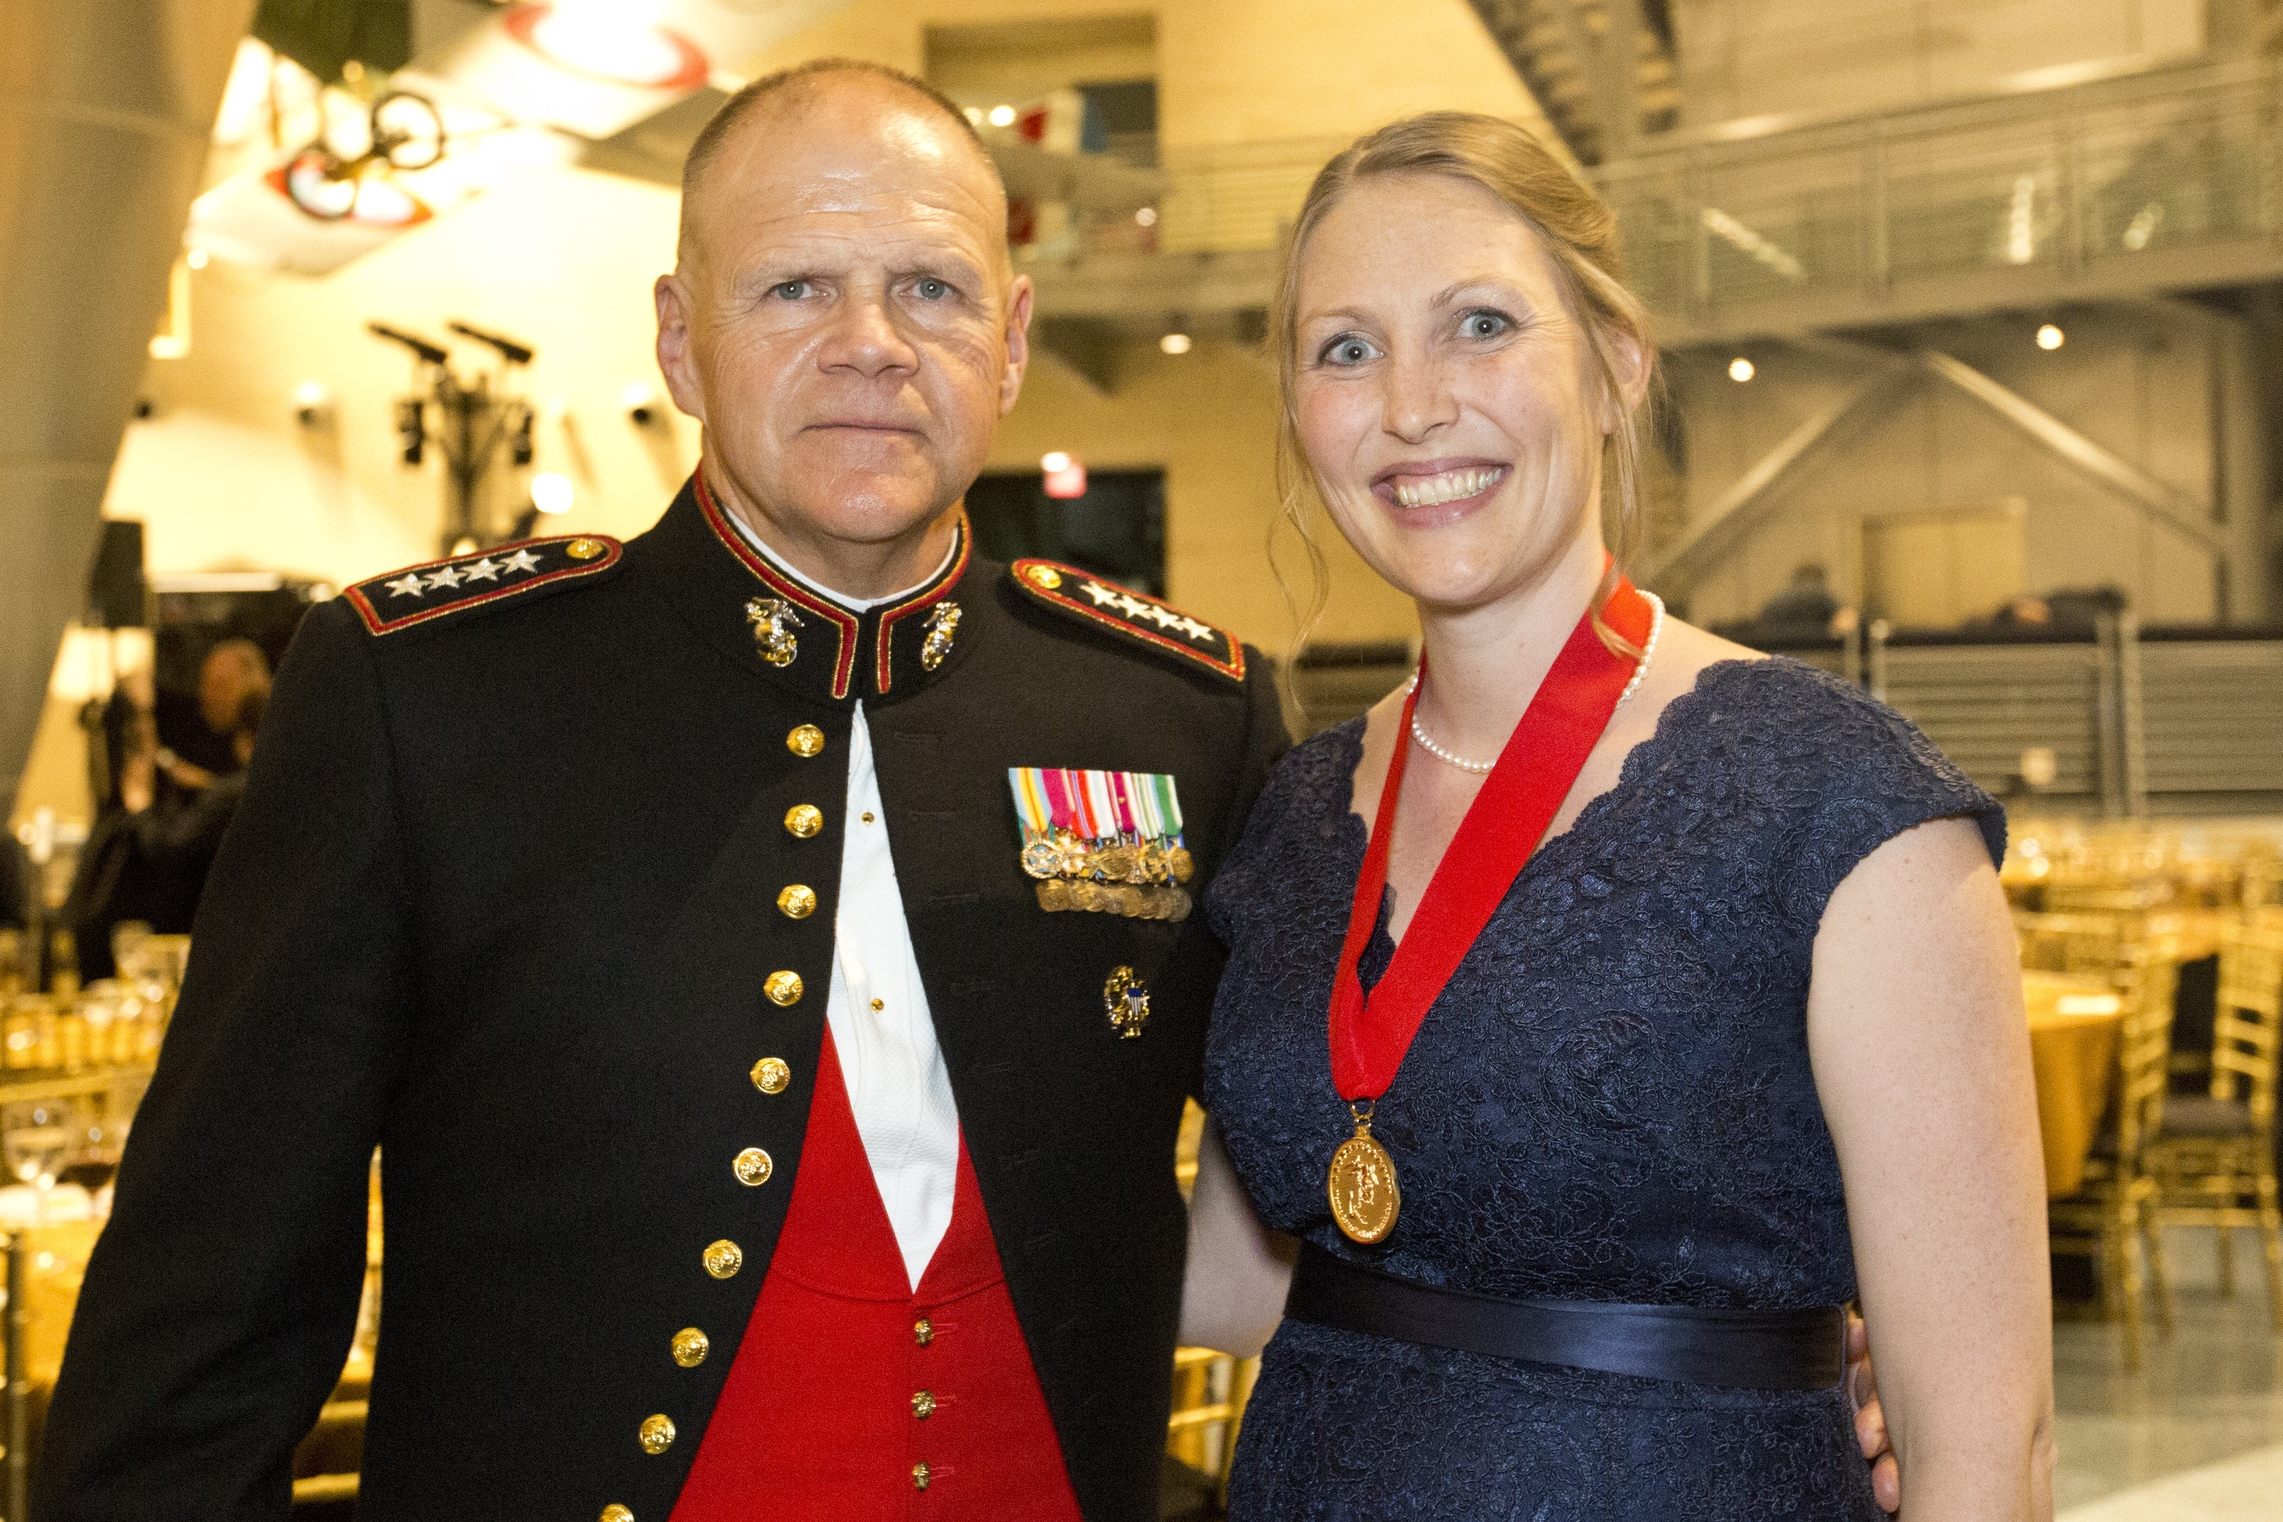 General Robert B. Neller, USMC and Mardie Rees